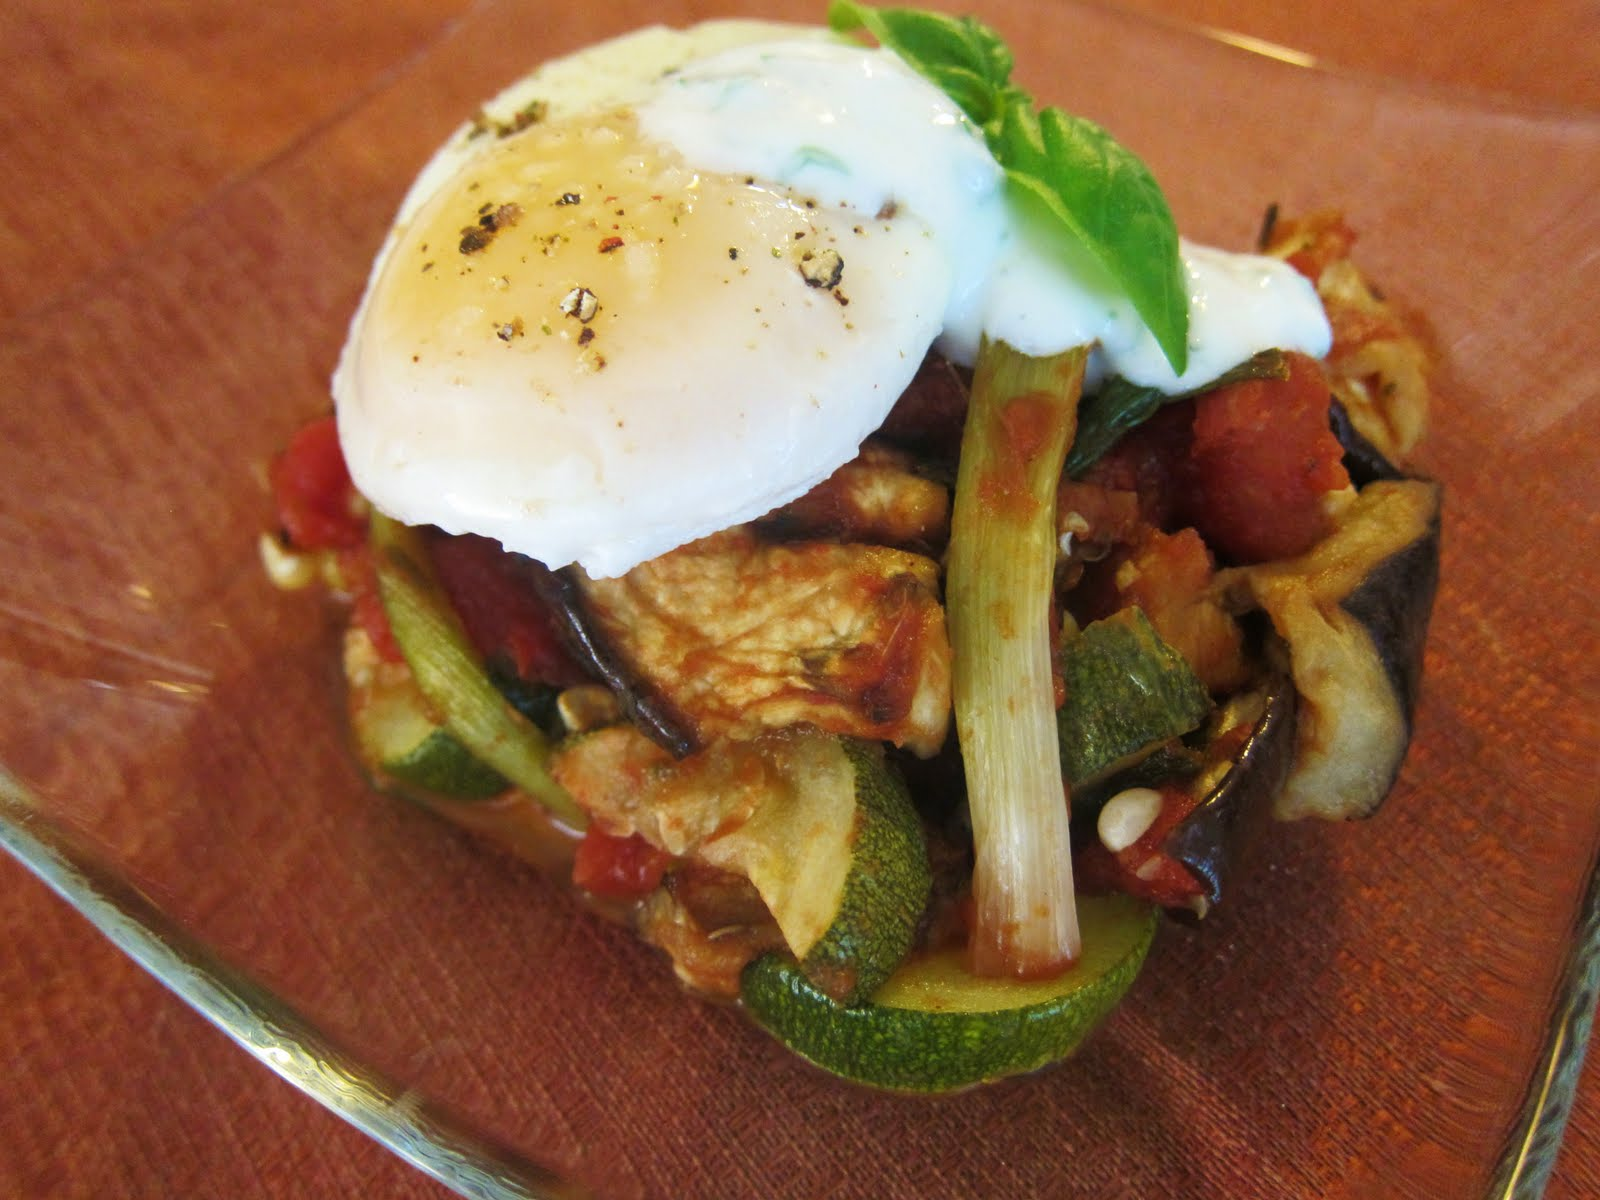 ... of Roasted Summer Vegetables with Poached Eggs and Basil Chevre Cream